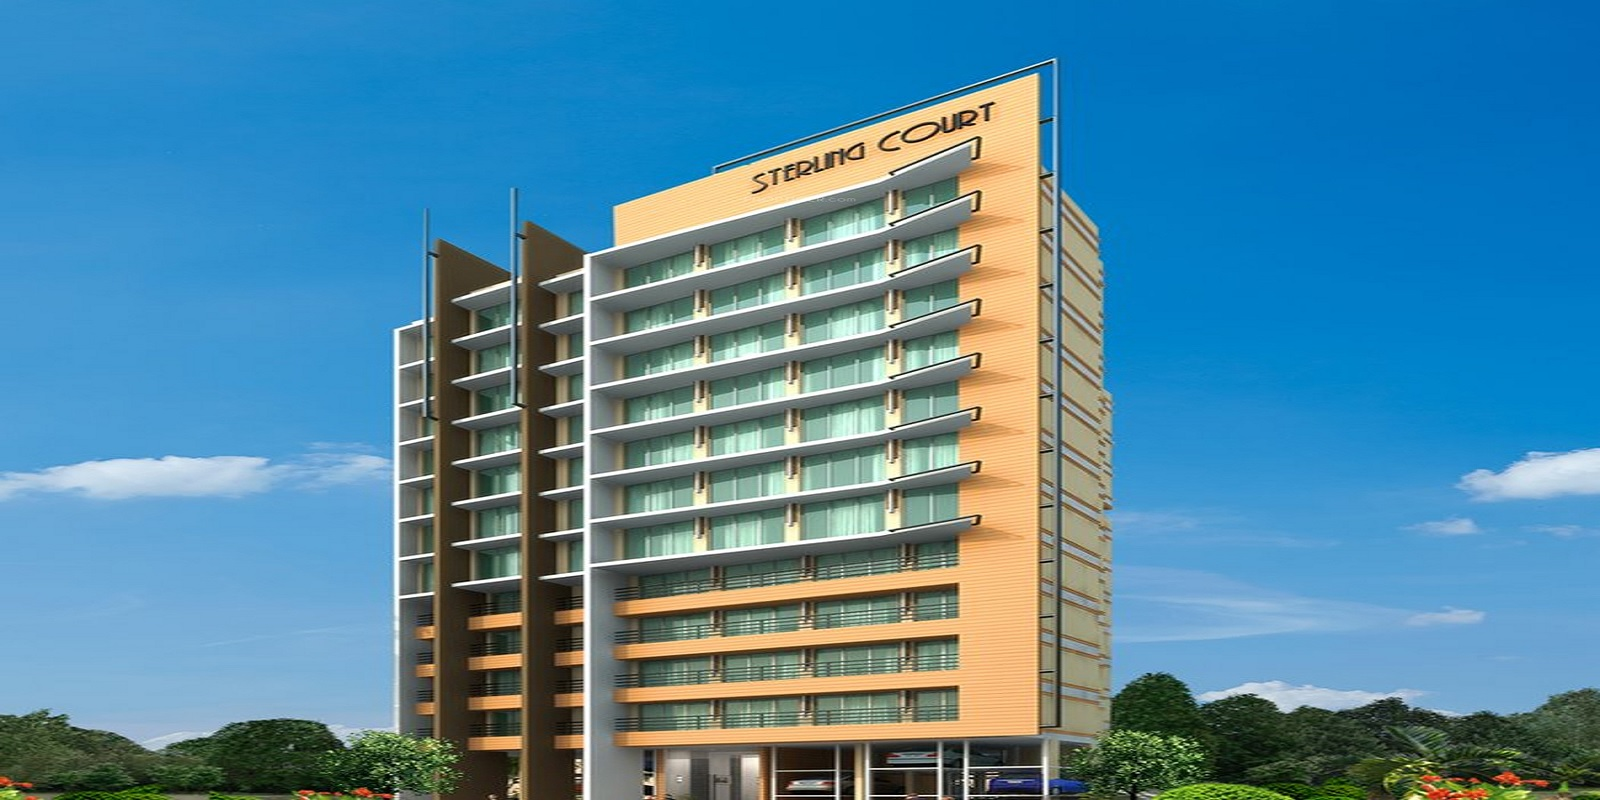 apraulic sterling court wing d project project large image1